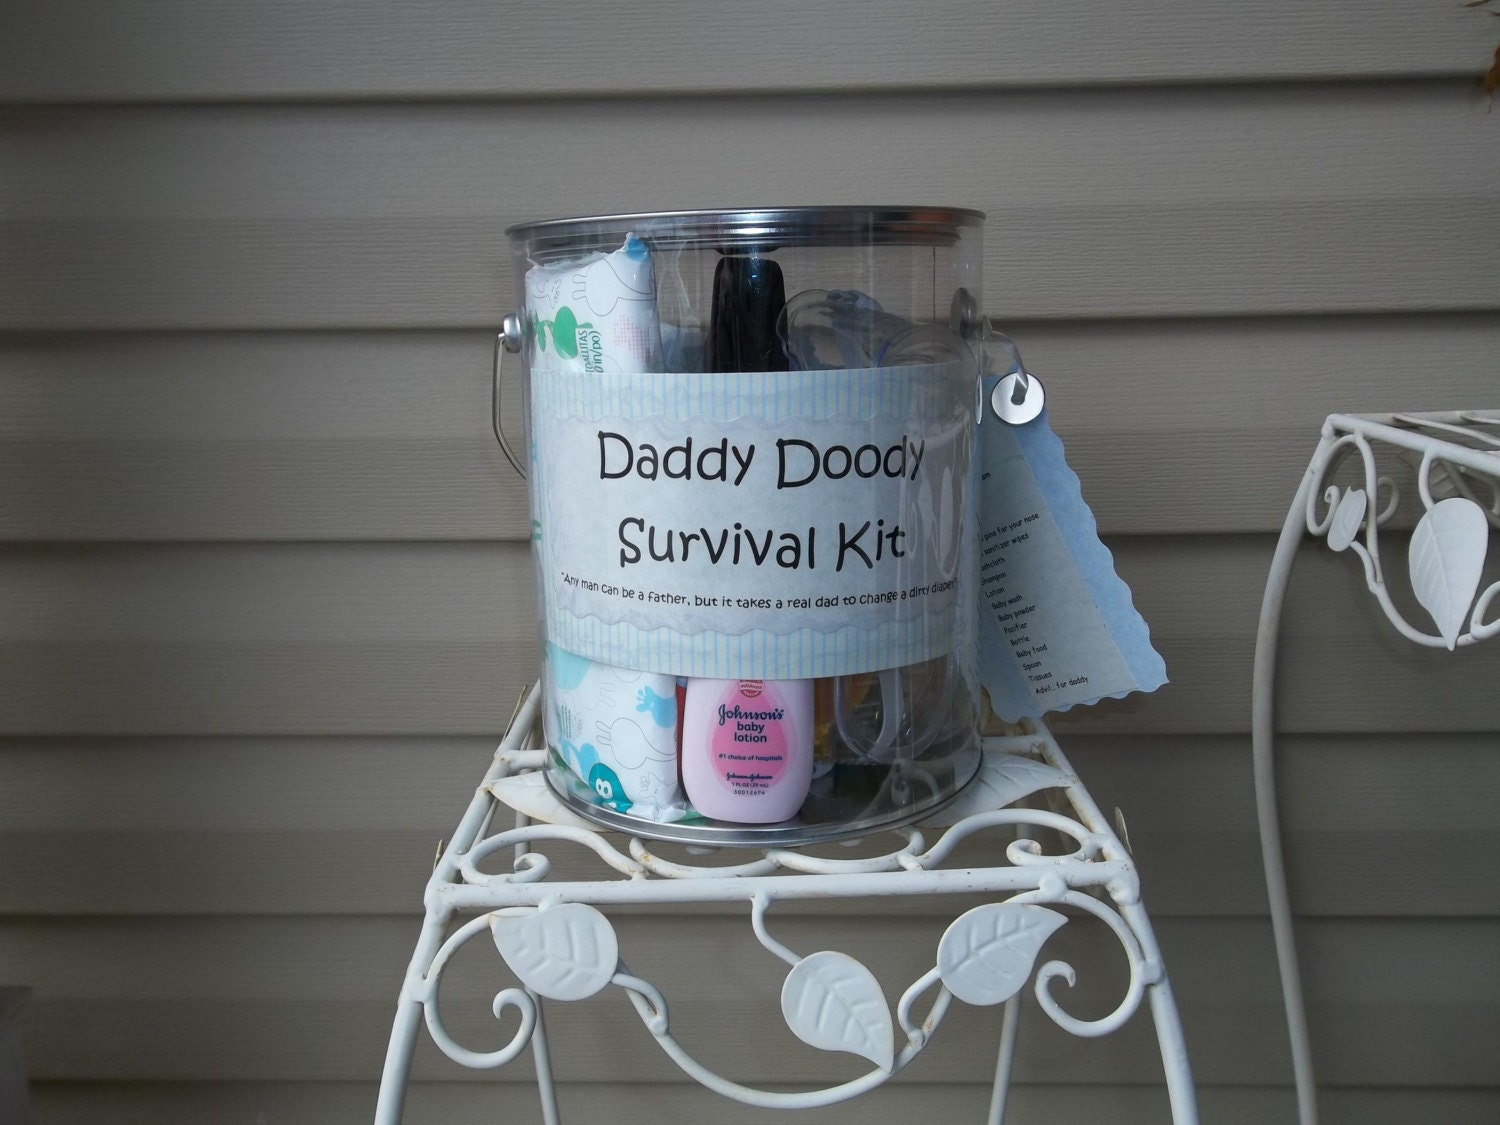 Baby Shower For Dad Gifts ~ Daddy doody survival kit great gift for baby shower by